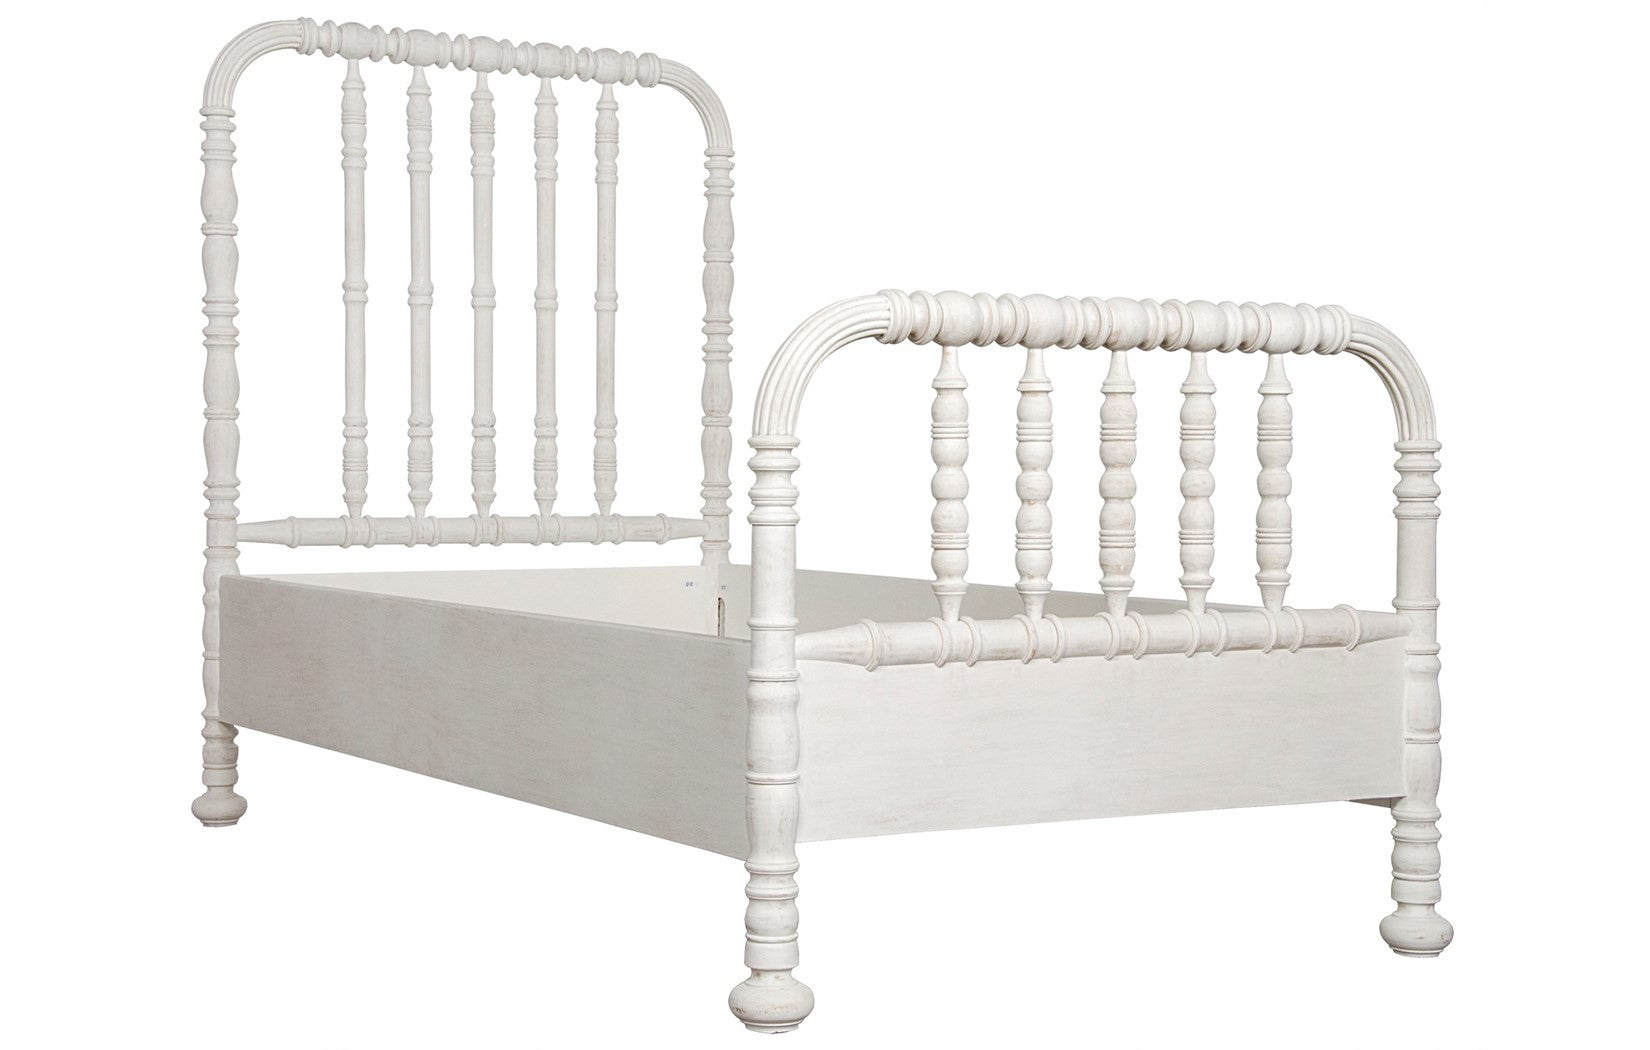 Noir - Bachelor Bed, Eastern King, White Wash